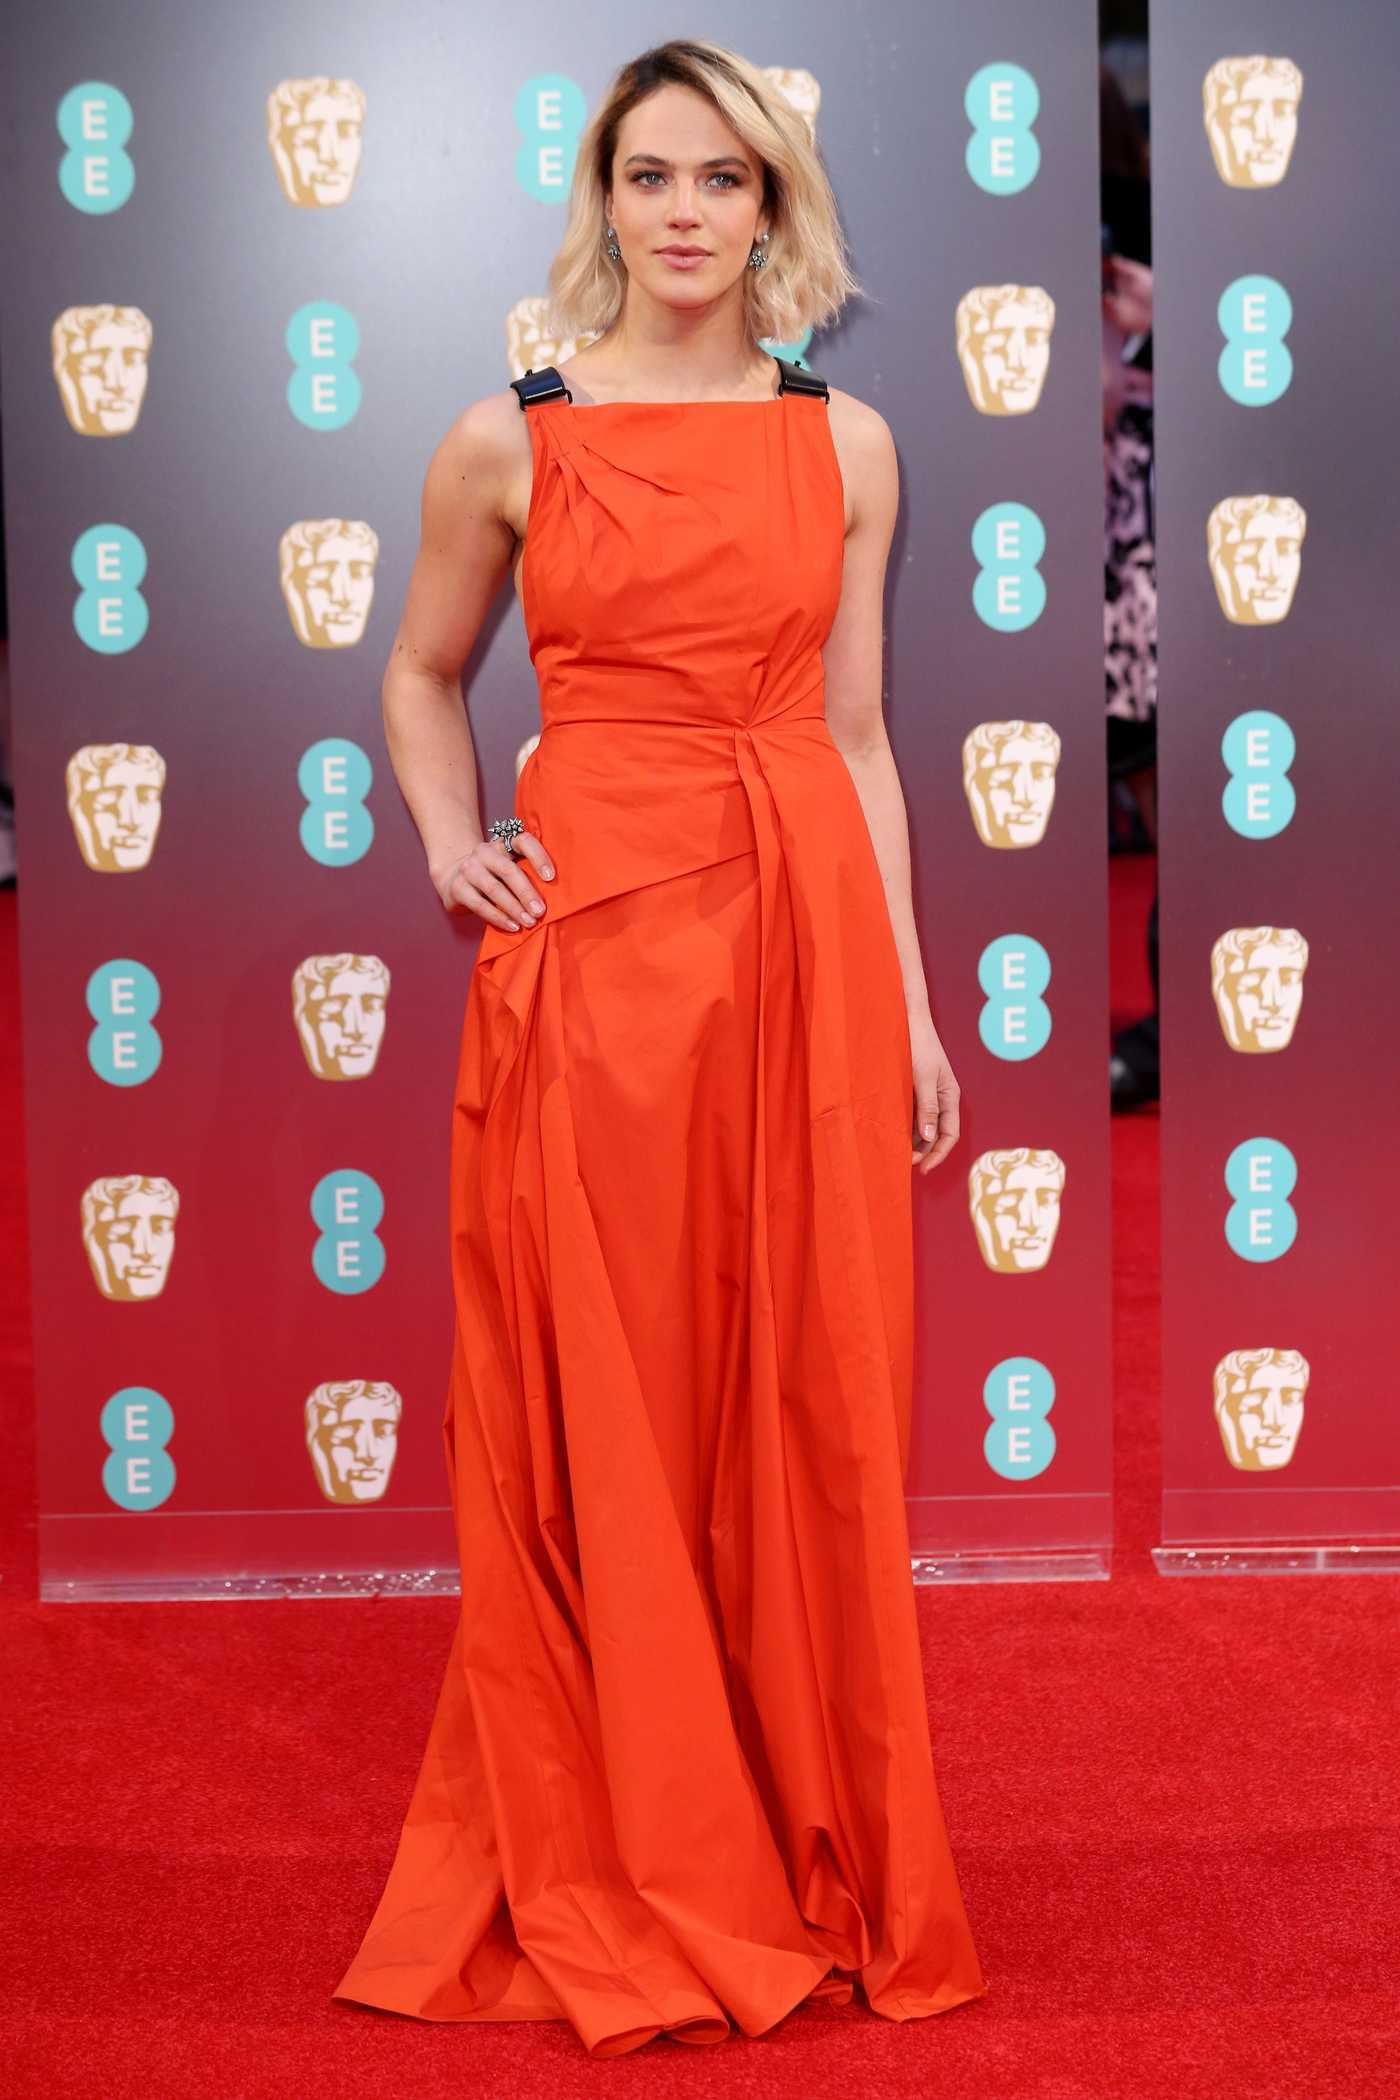 Jessica Brown Findlay at the 70th Annual EE British Academy Film Awards in London 02/12/2017